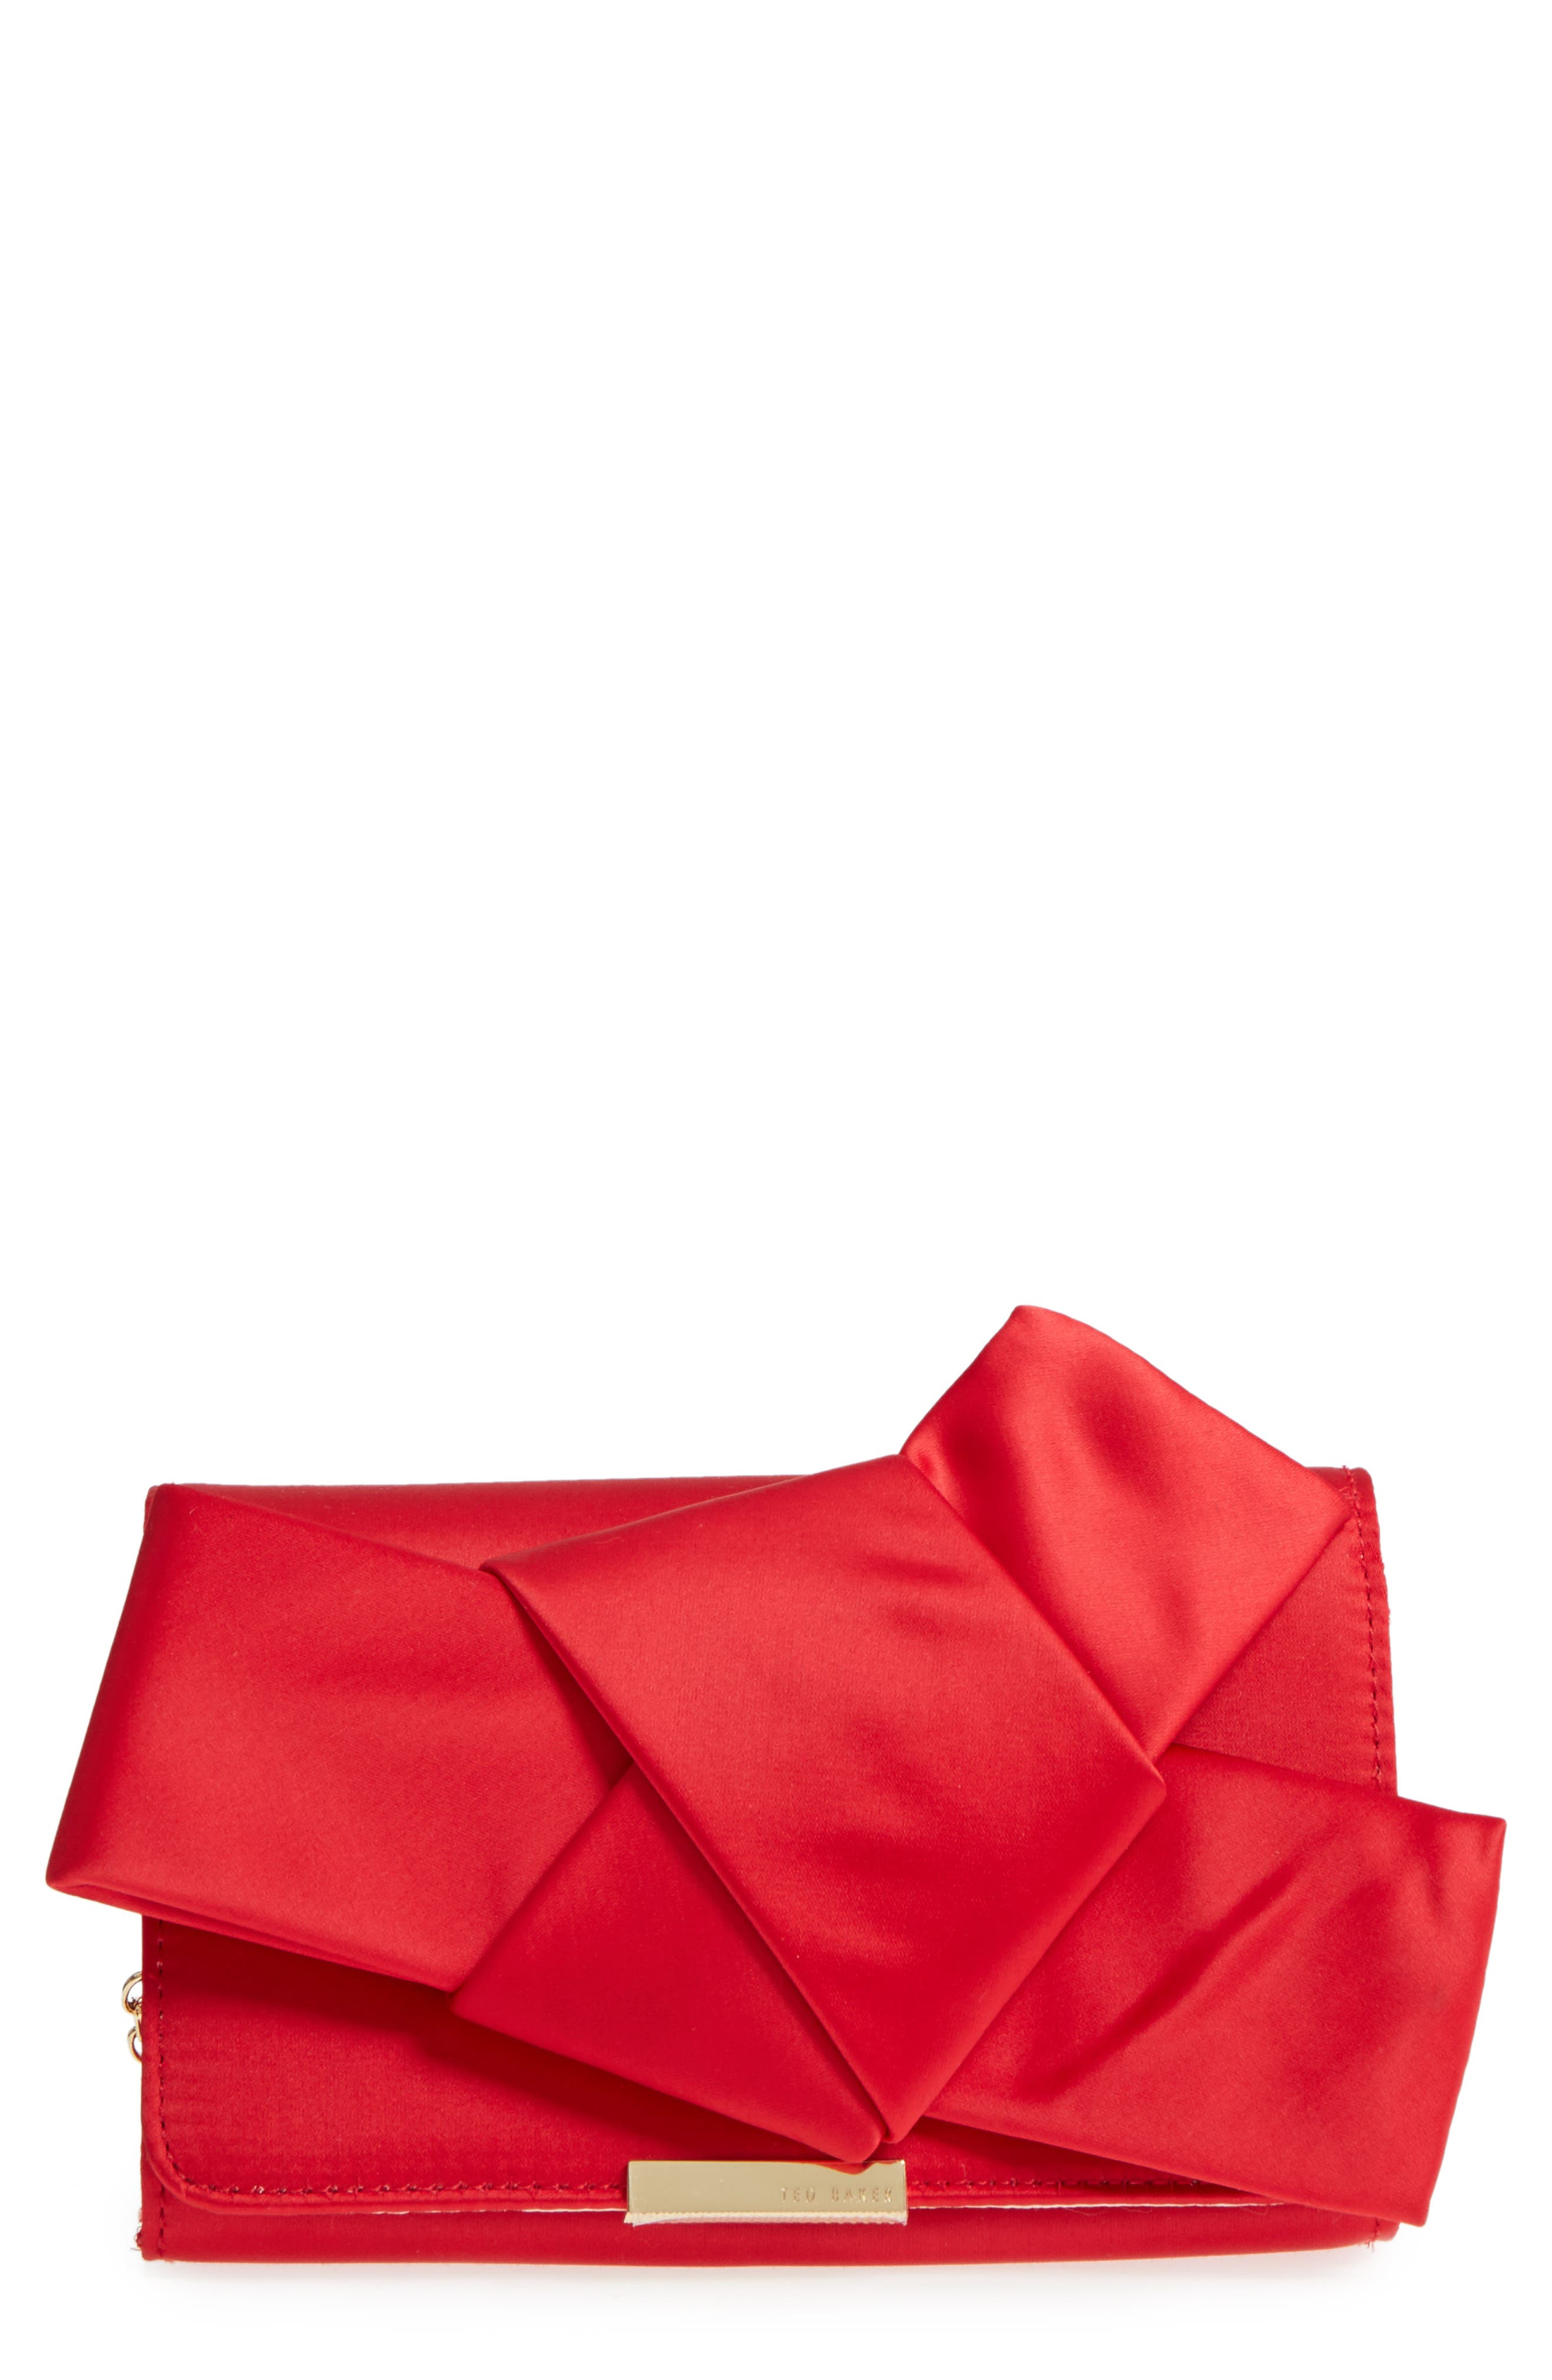 Fefee Satin Knotted Bow Clutch,                             Main thumbnail 1, color,                             BRIGHT RED